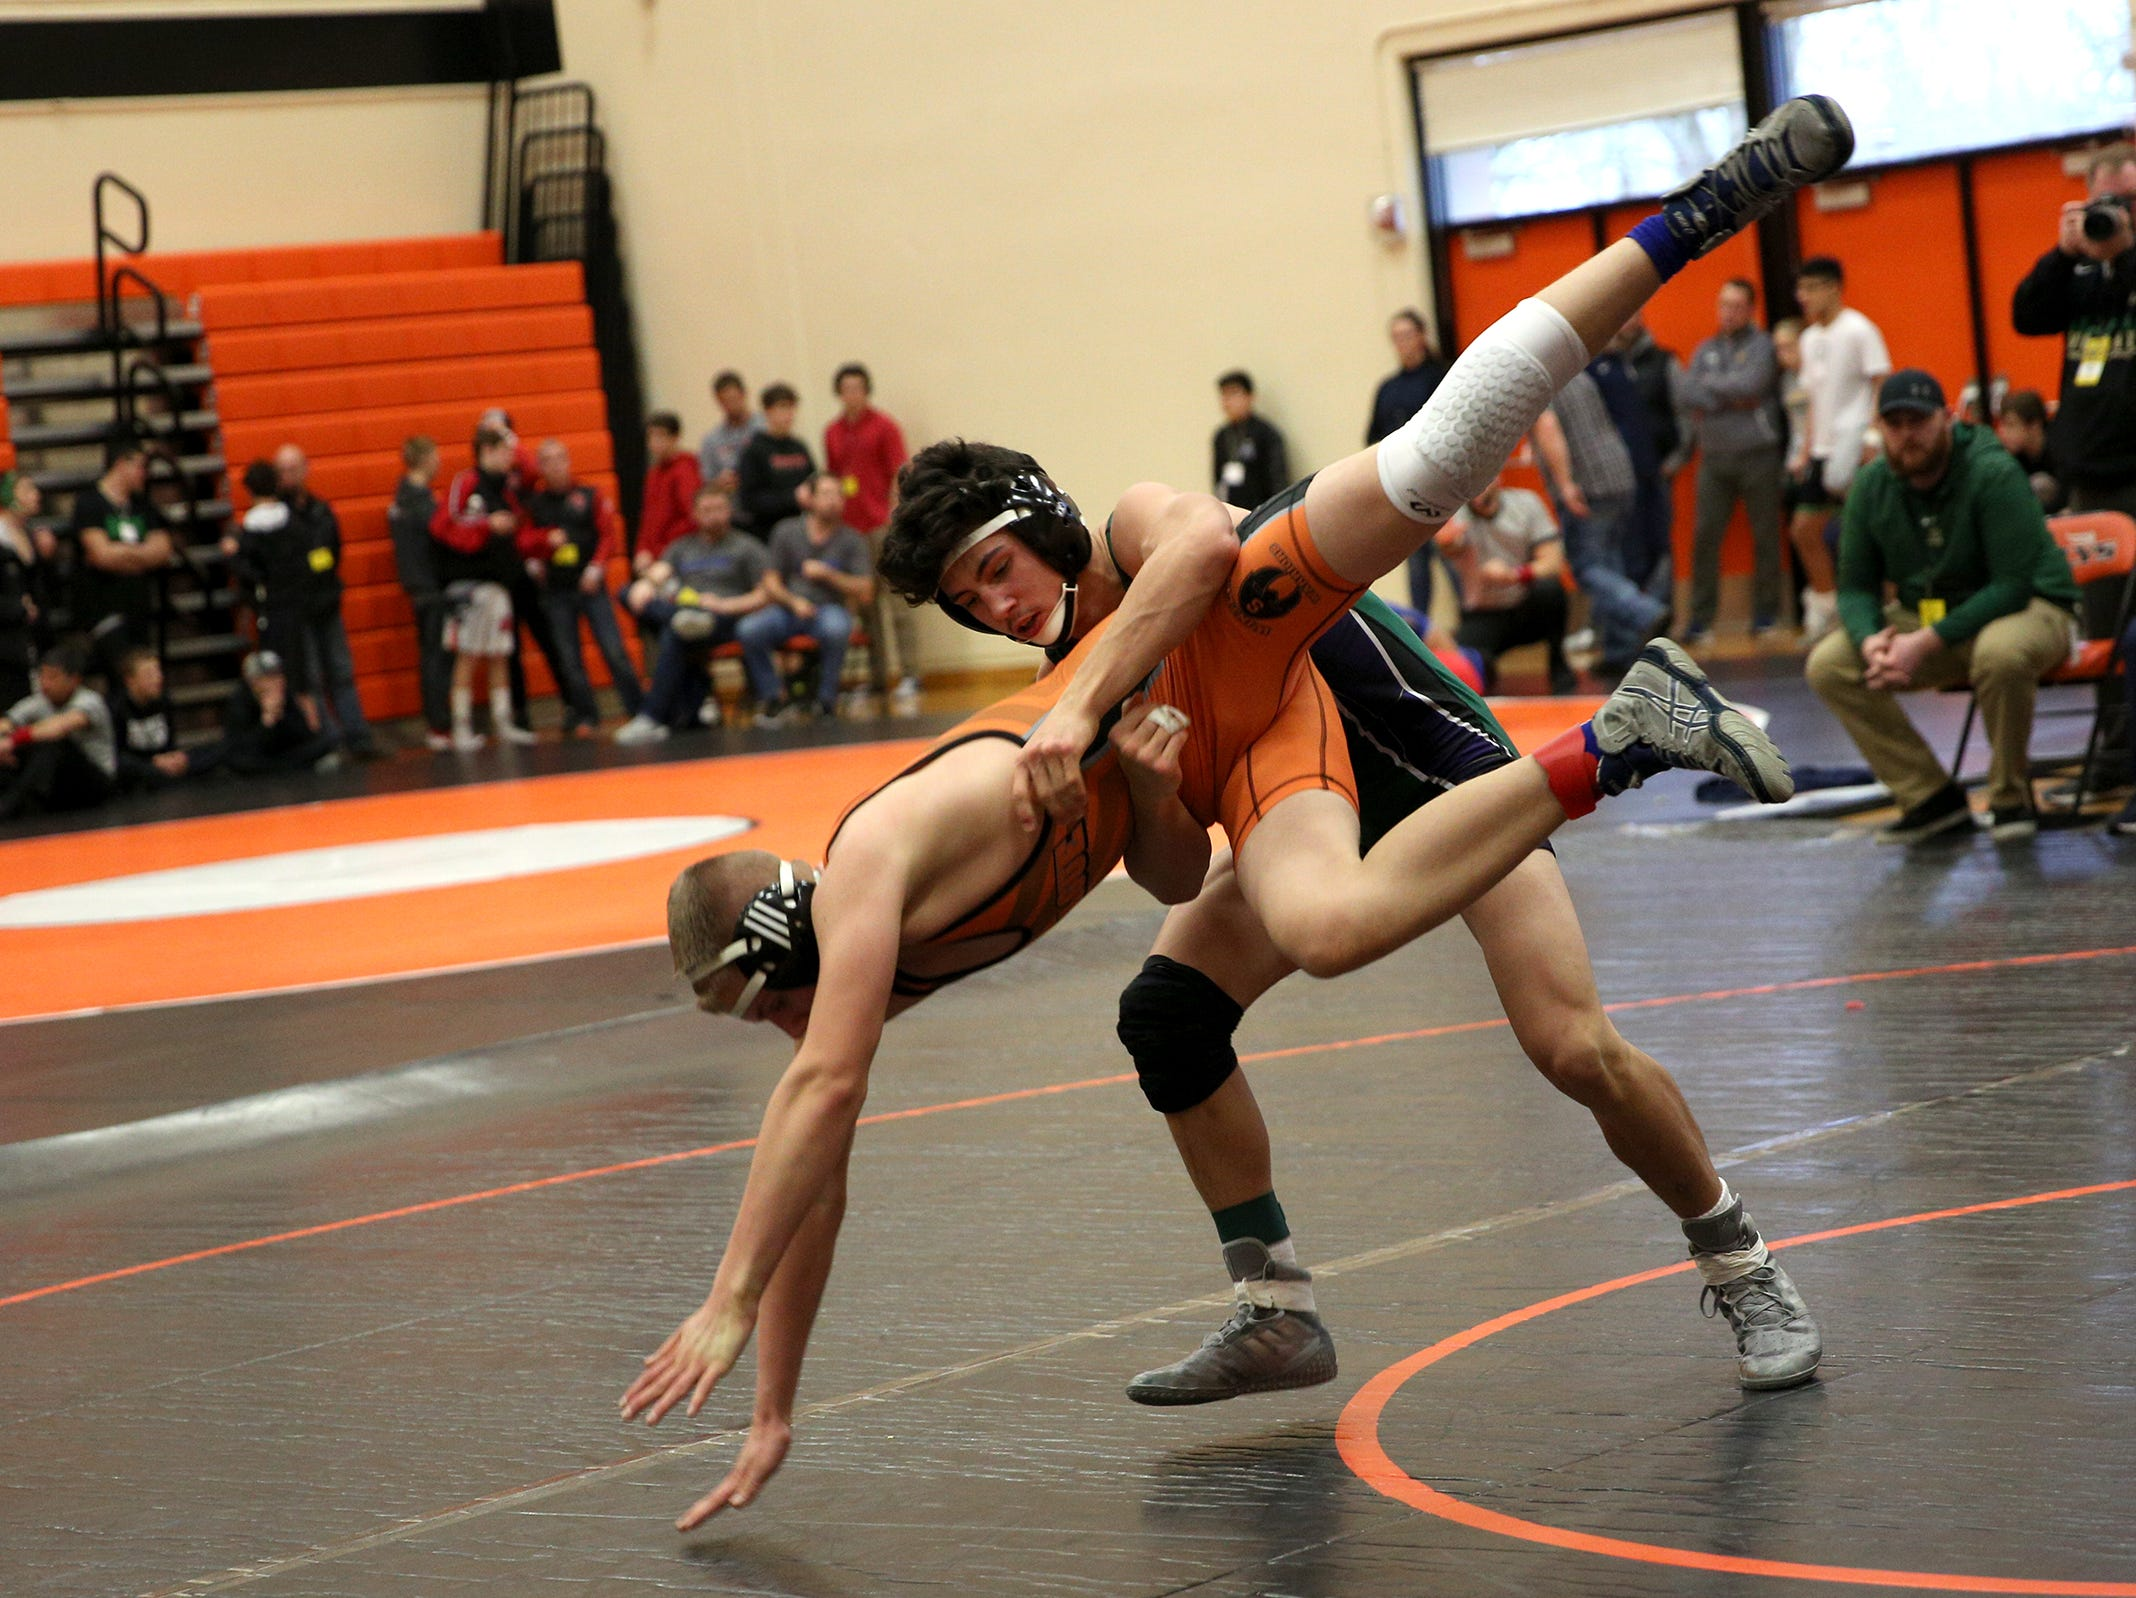 McKay's Gavin Harris throws down Sprague's Aiden Walter as they compete in the 145 pound weight class during the Mountain Valley Conference district wrestling tournament at Sprague High School in Salem on Friday, Feb. 15, 2019.